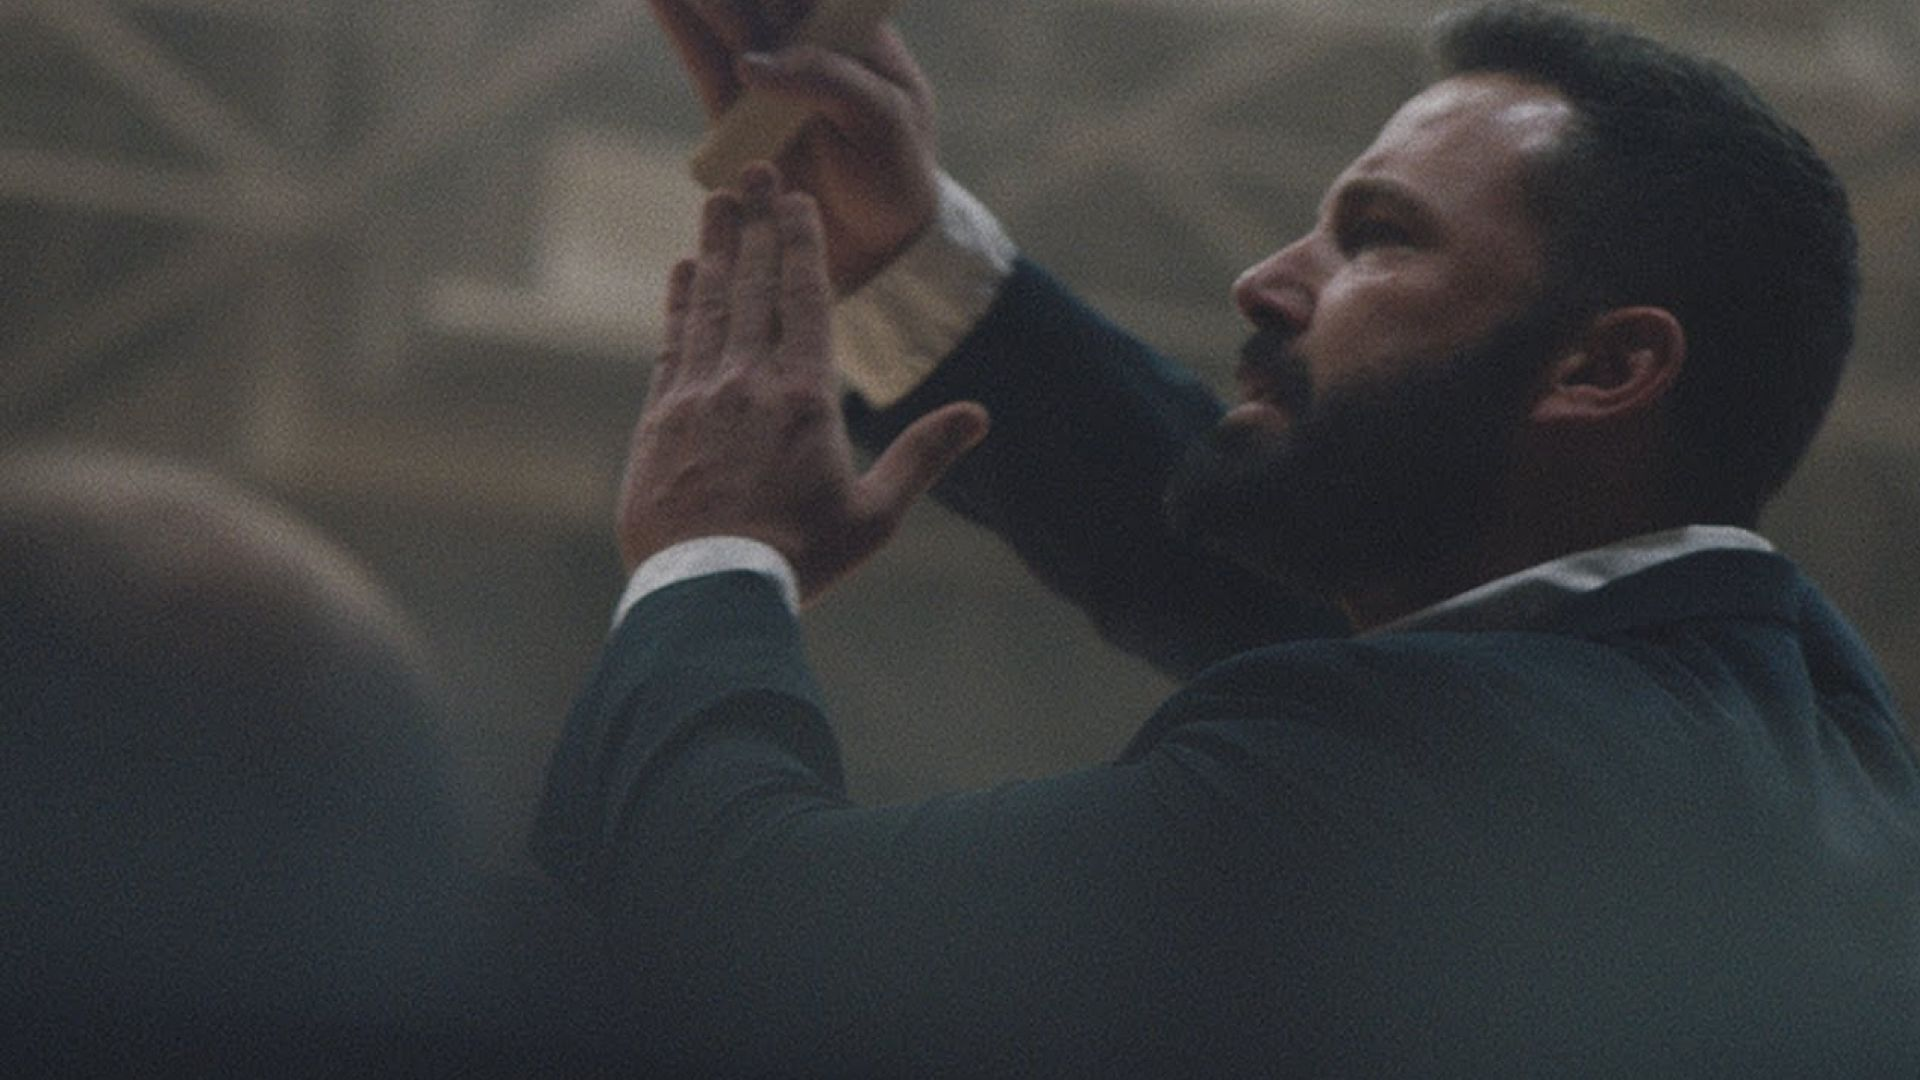 'The Way Back' Trailer, with Ben Affleck